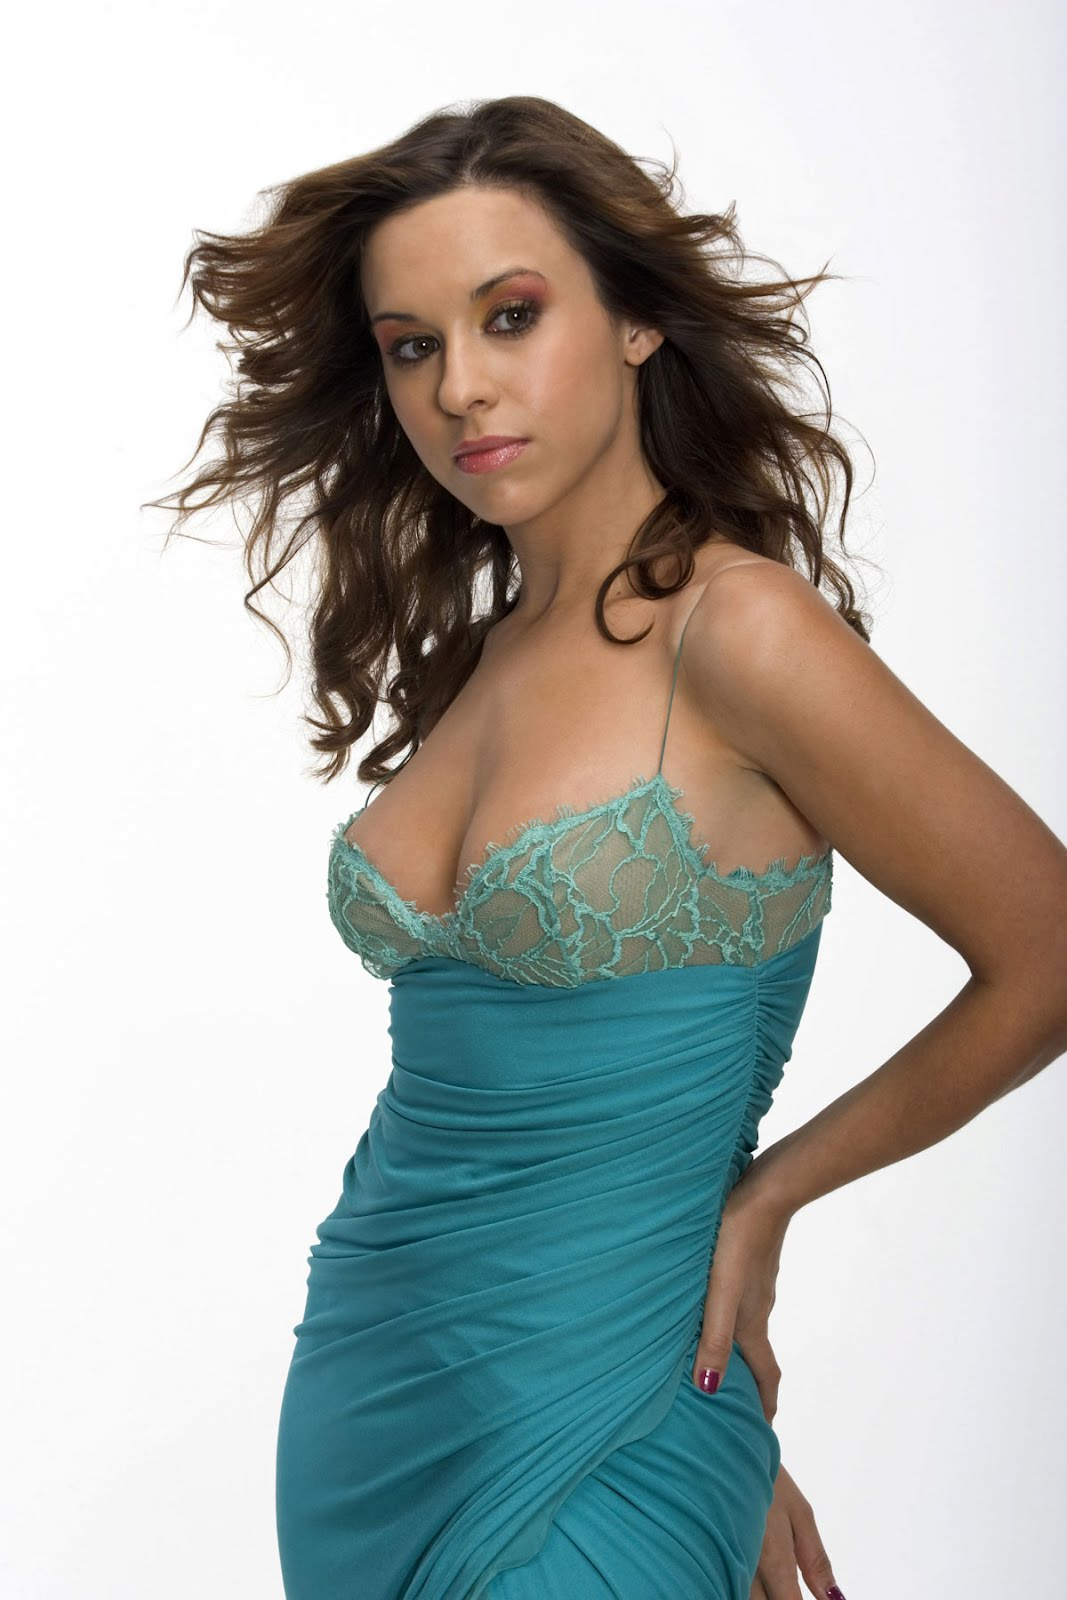 Lacey Chabert 34 C Cup Size2